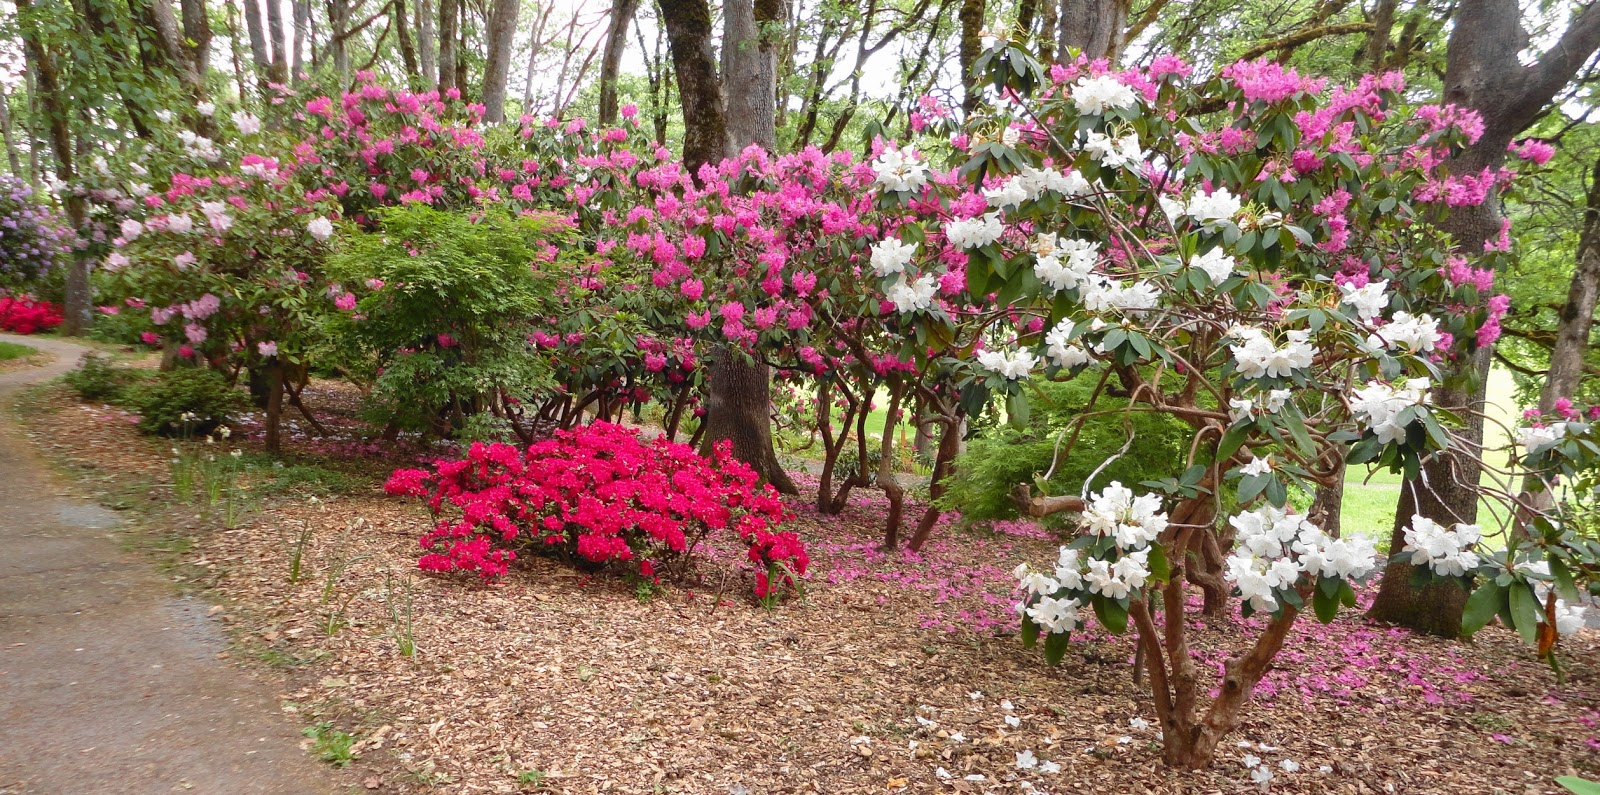 American Rhododendron Society Willamette Chapter